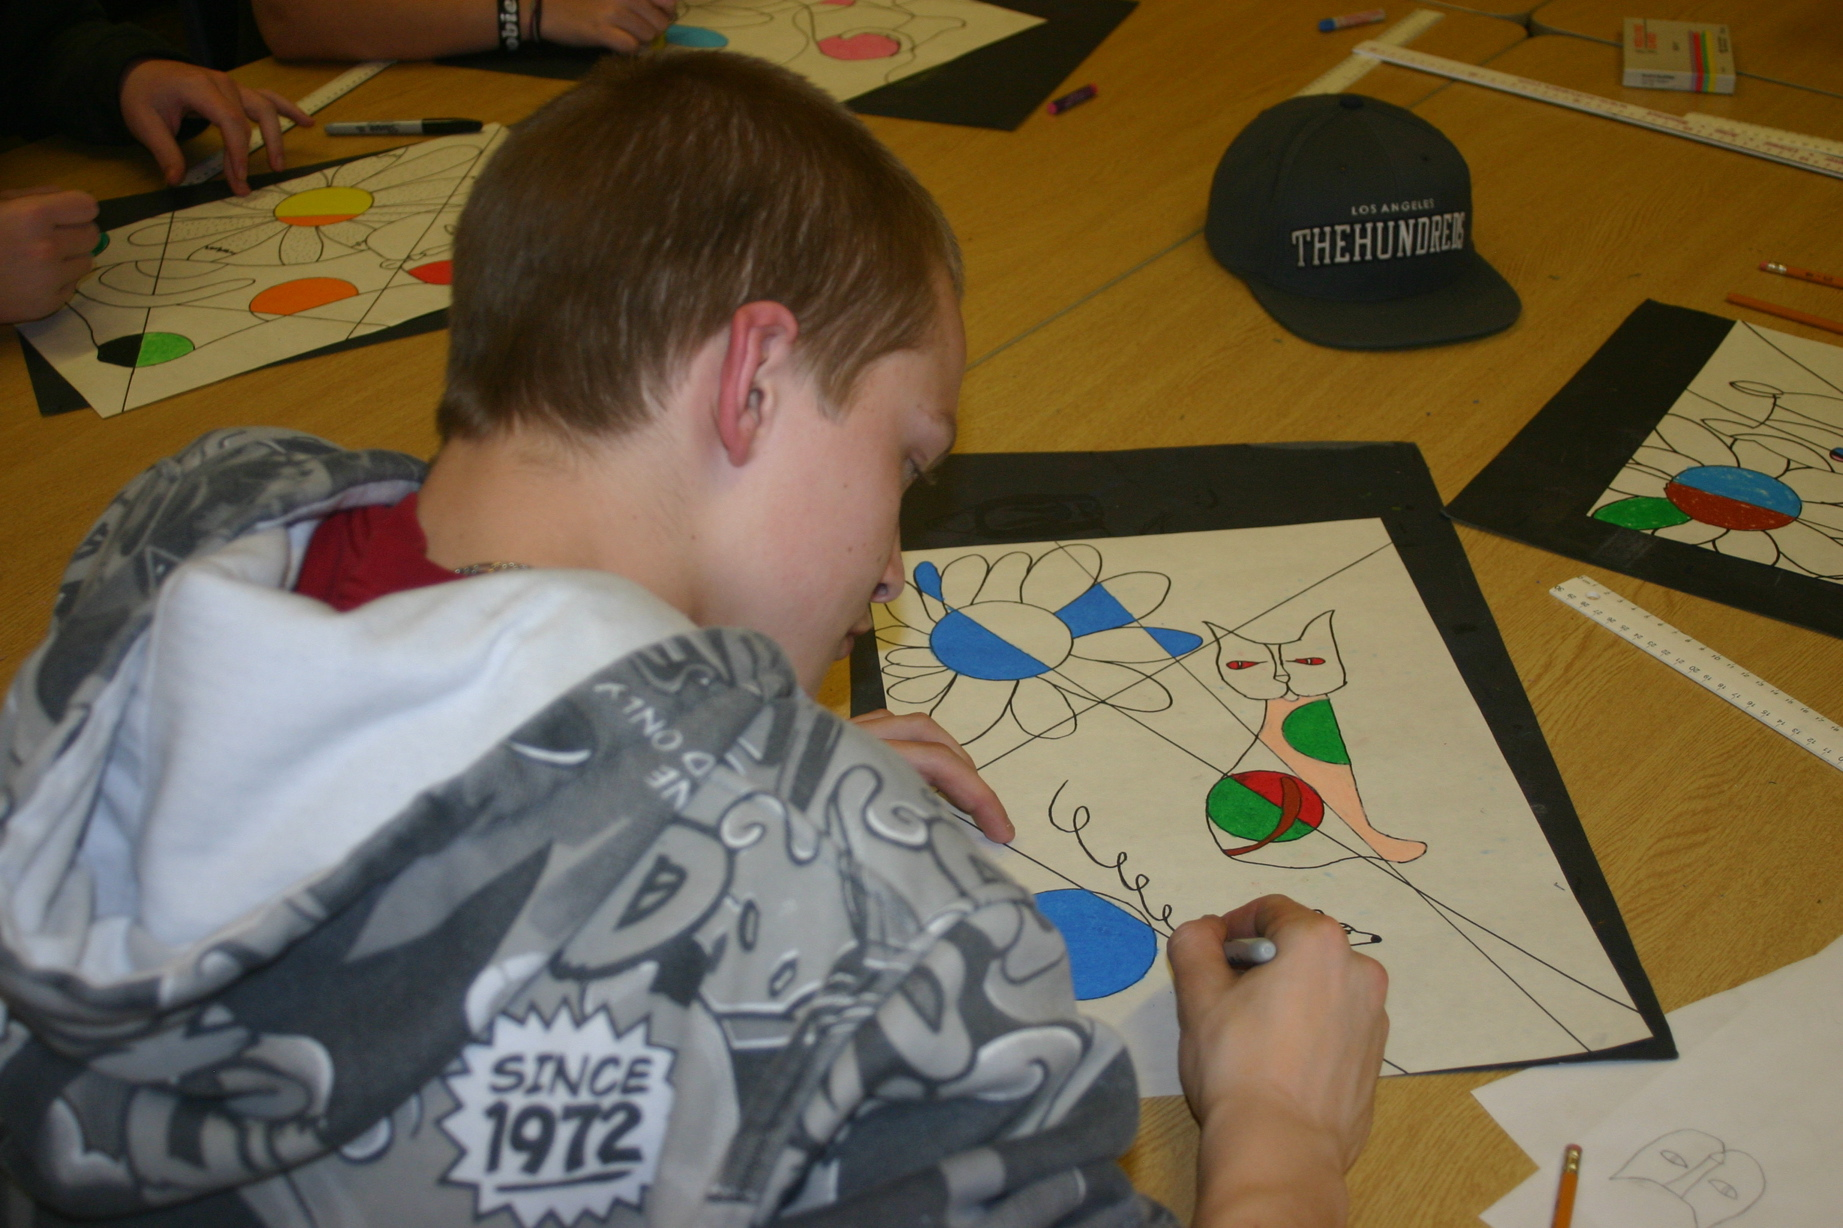 Ptown Youth artists